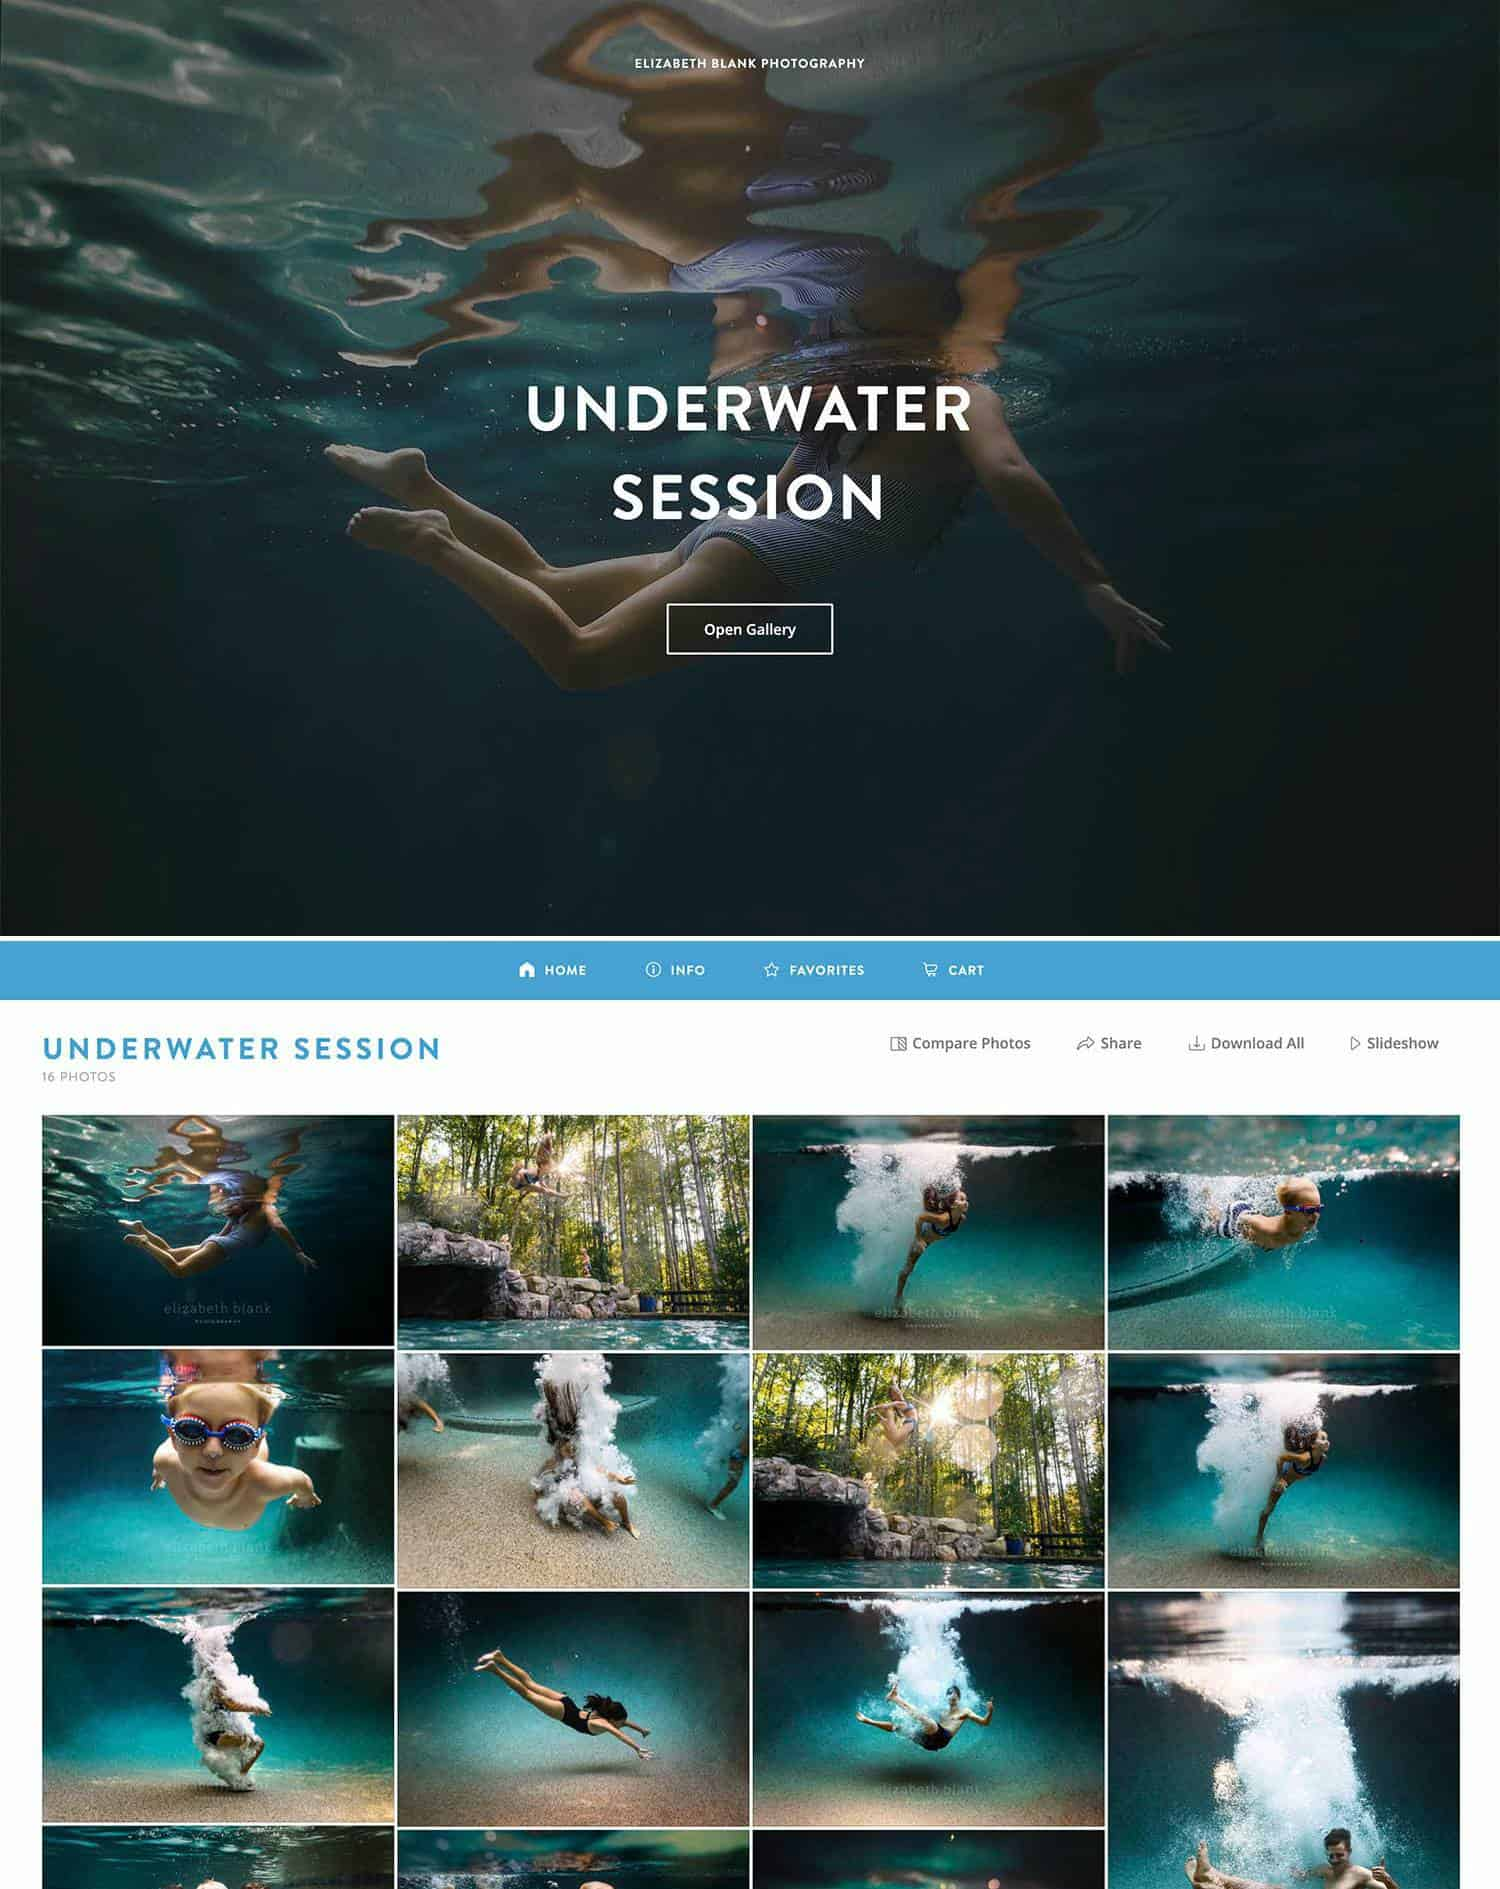 A ShootProof gallery for one of Elizabeth Blank's clients featuring children swimming underwater